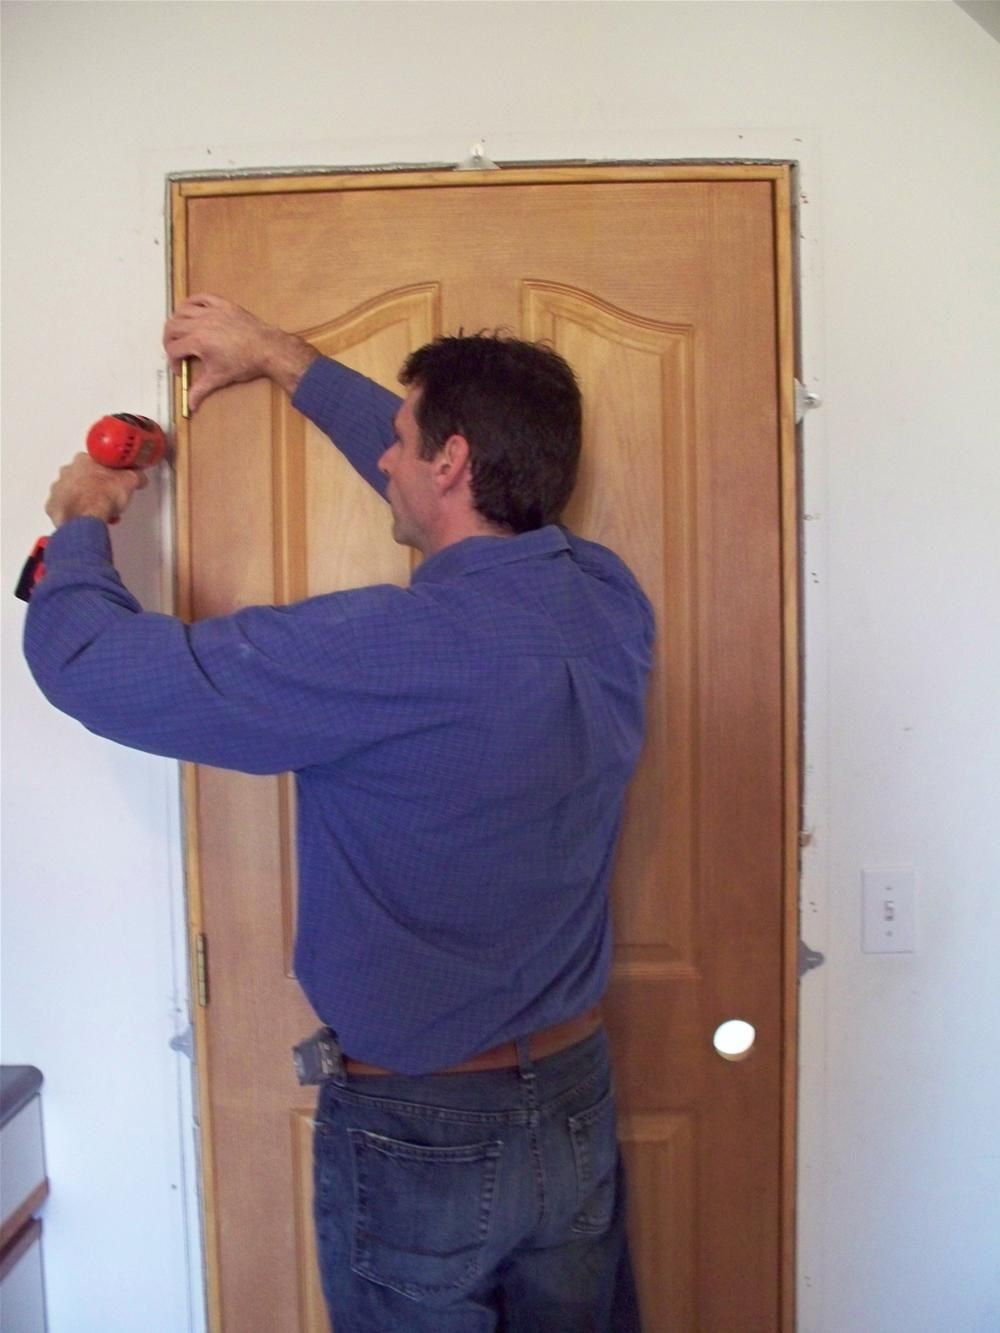 Exceptionnel Ez Hang Door Installation Brackets Make Interior Pre Hung Door Installation  A Snap. Watch This Short Video To Learn Why.